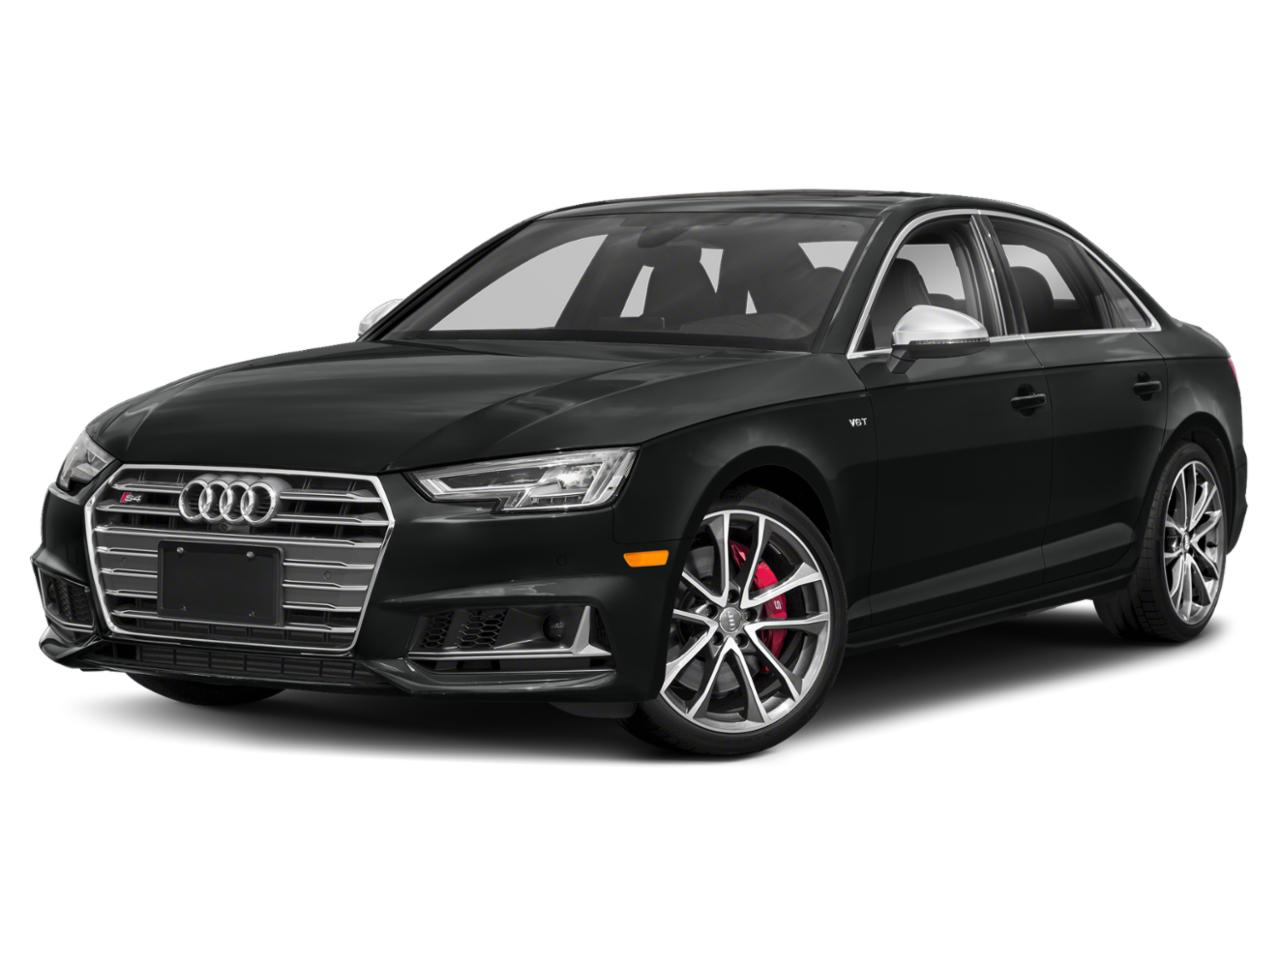 2018 Audi S4 Vehicle Photo in Appleton, WI 54913